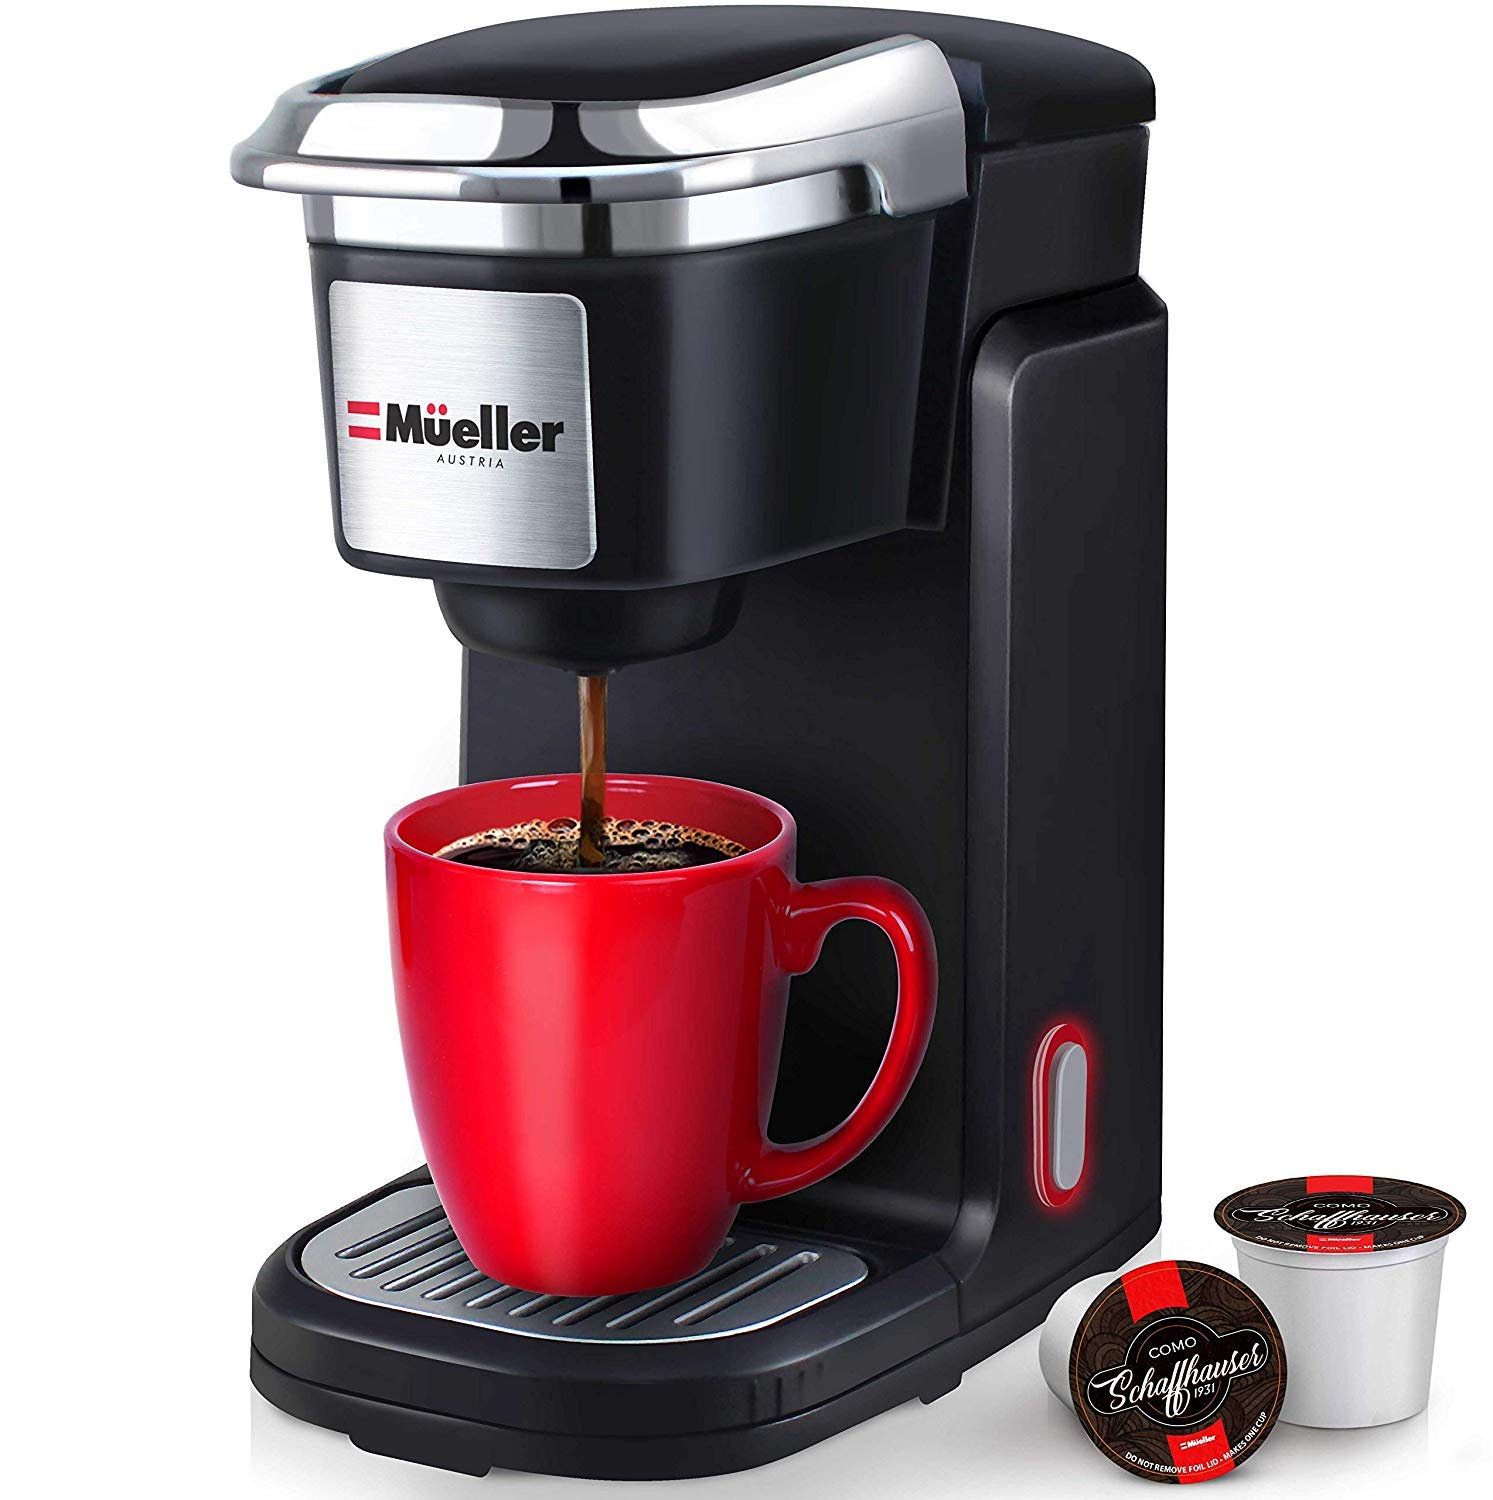 Mueller Barista Pro Single Serve Brewer 10oz Coffee Maker Machine with One Button Operation, Auto Shut-Off, Compatible with All Coffee Capsules by Mueller Austria